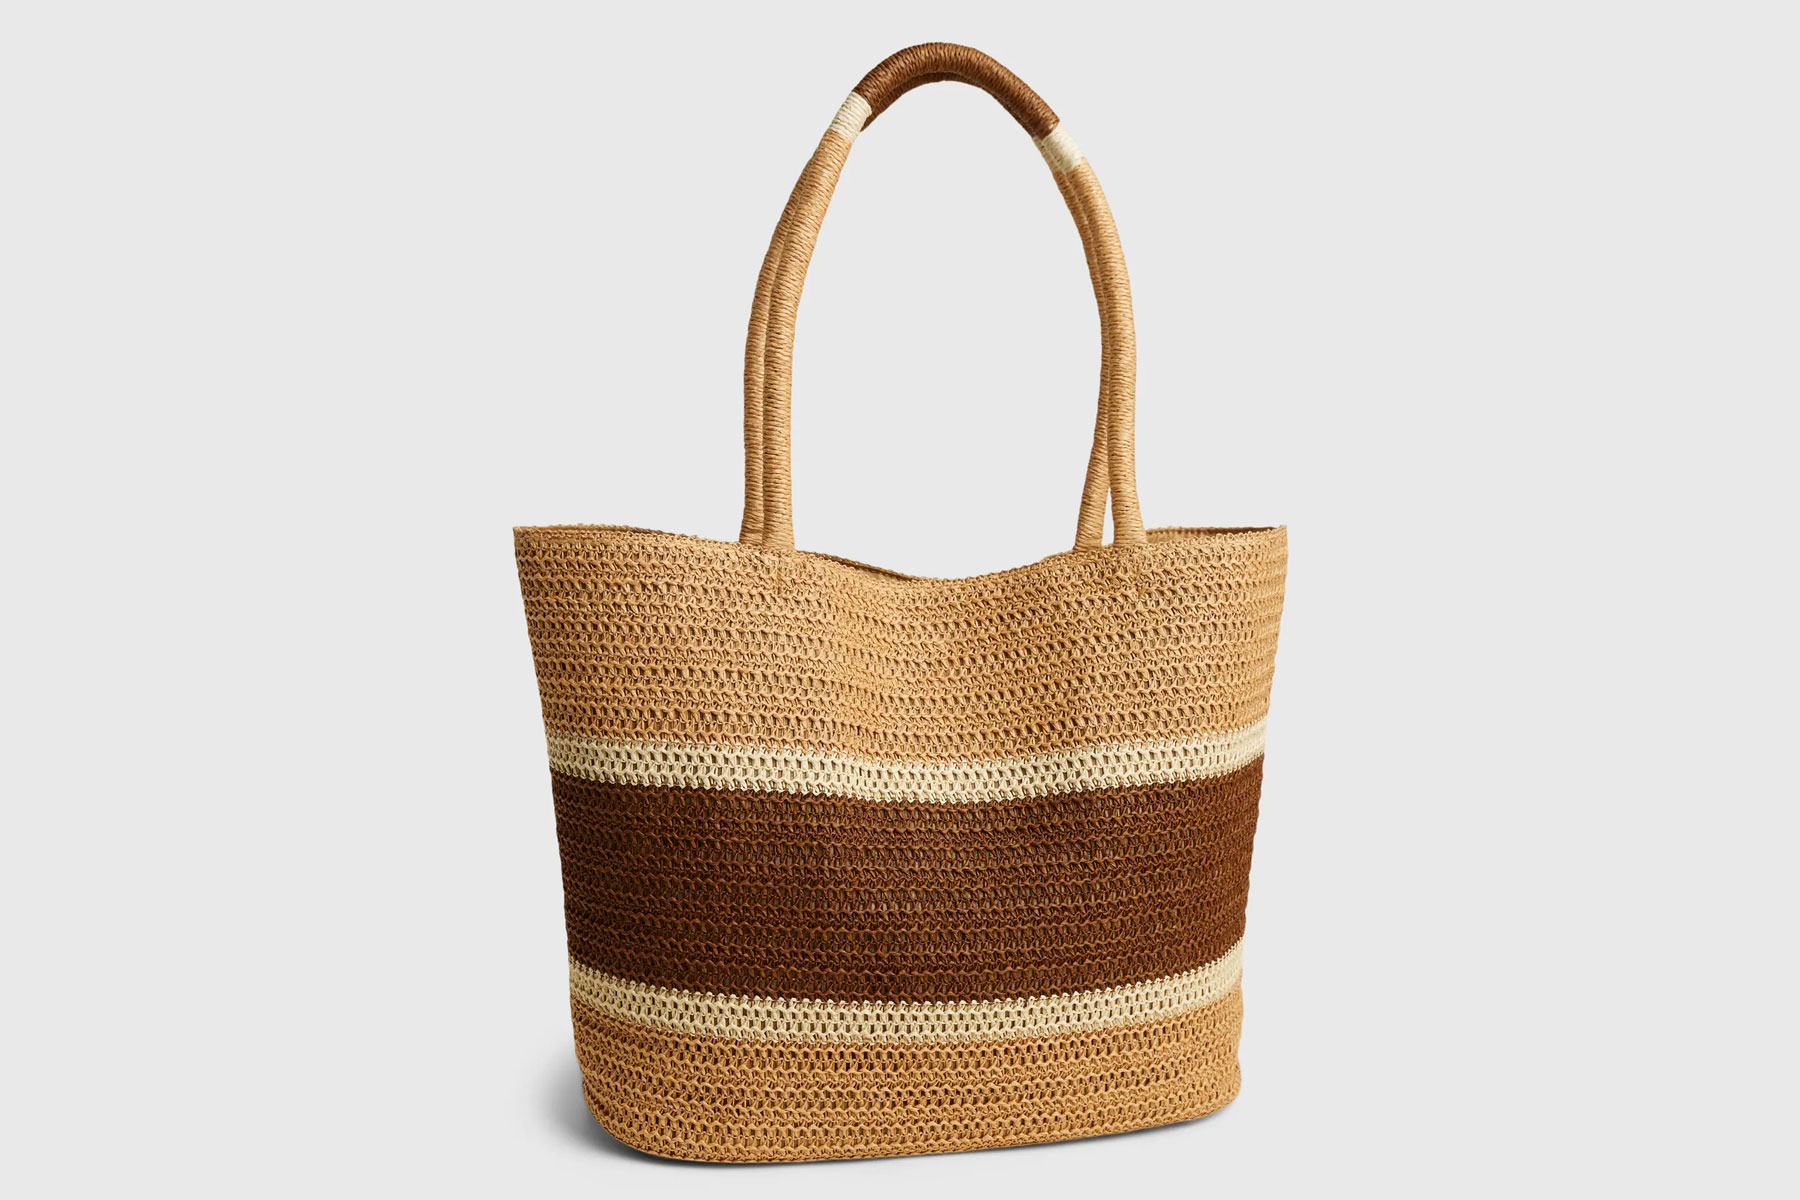 Brown and tan striped woven tote